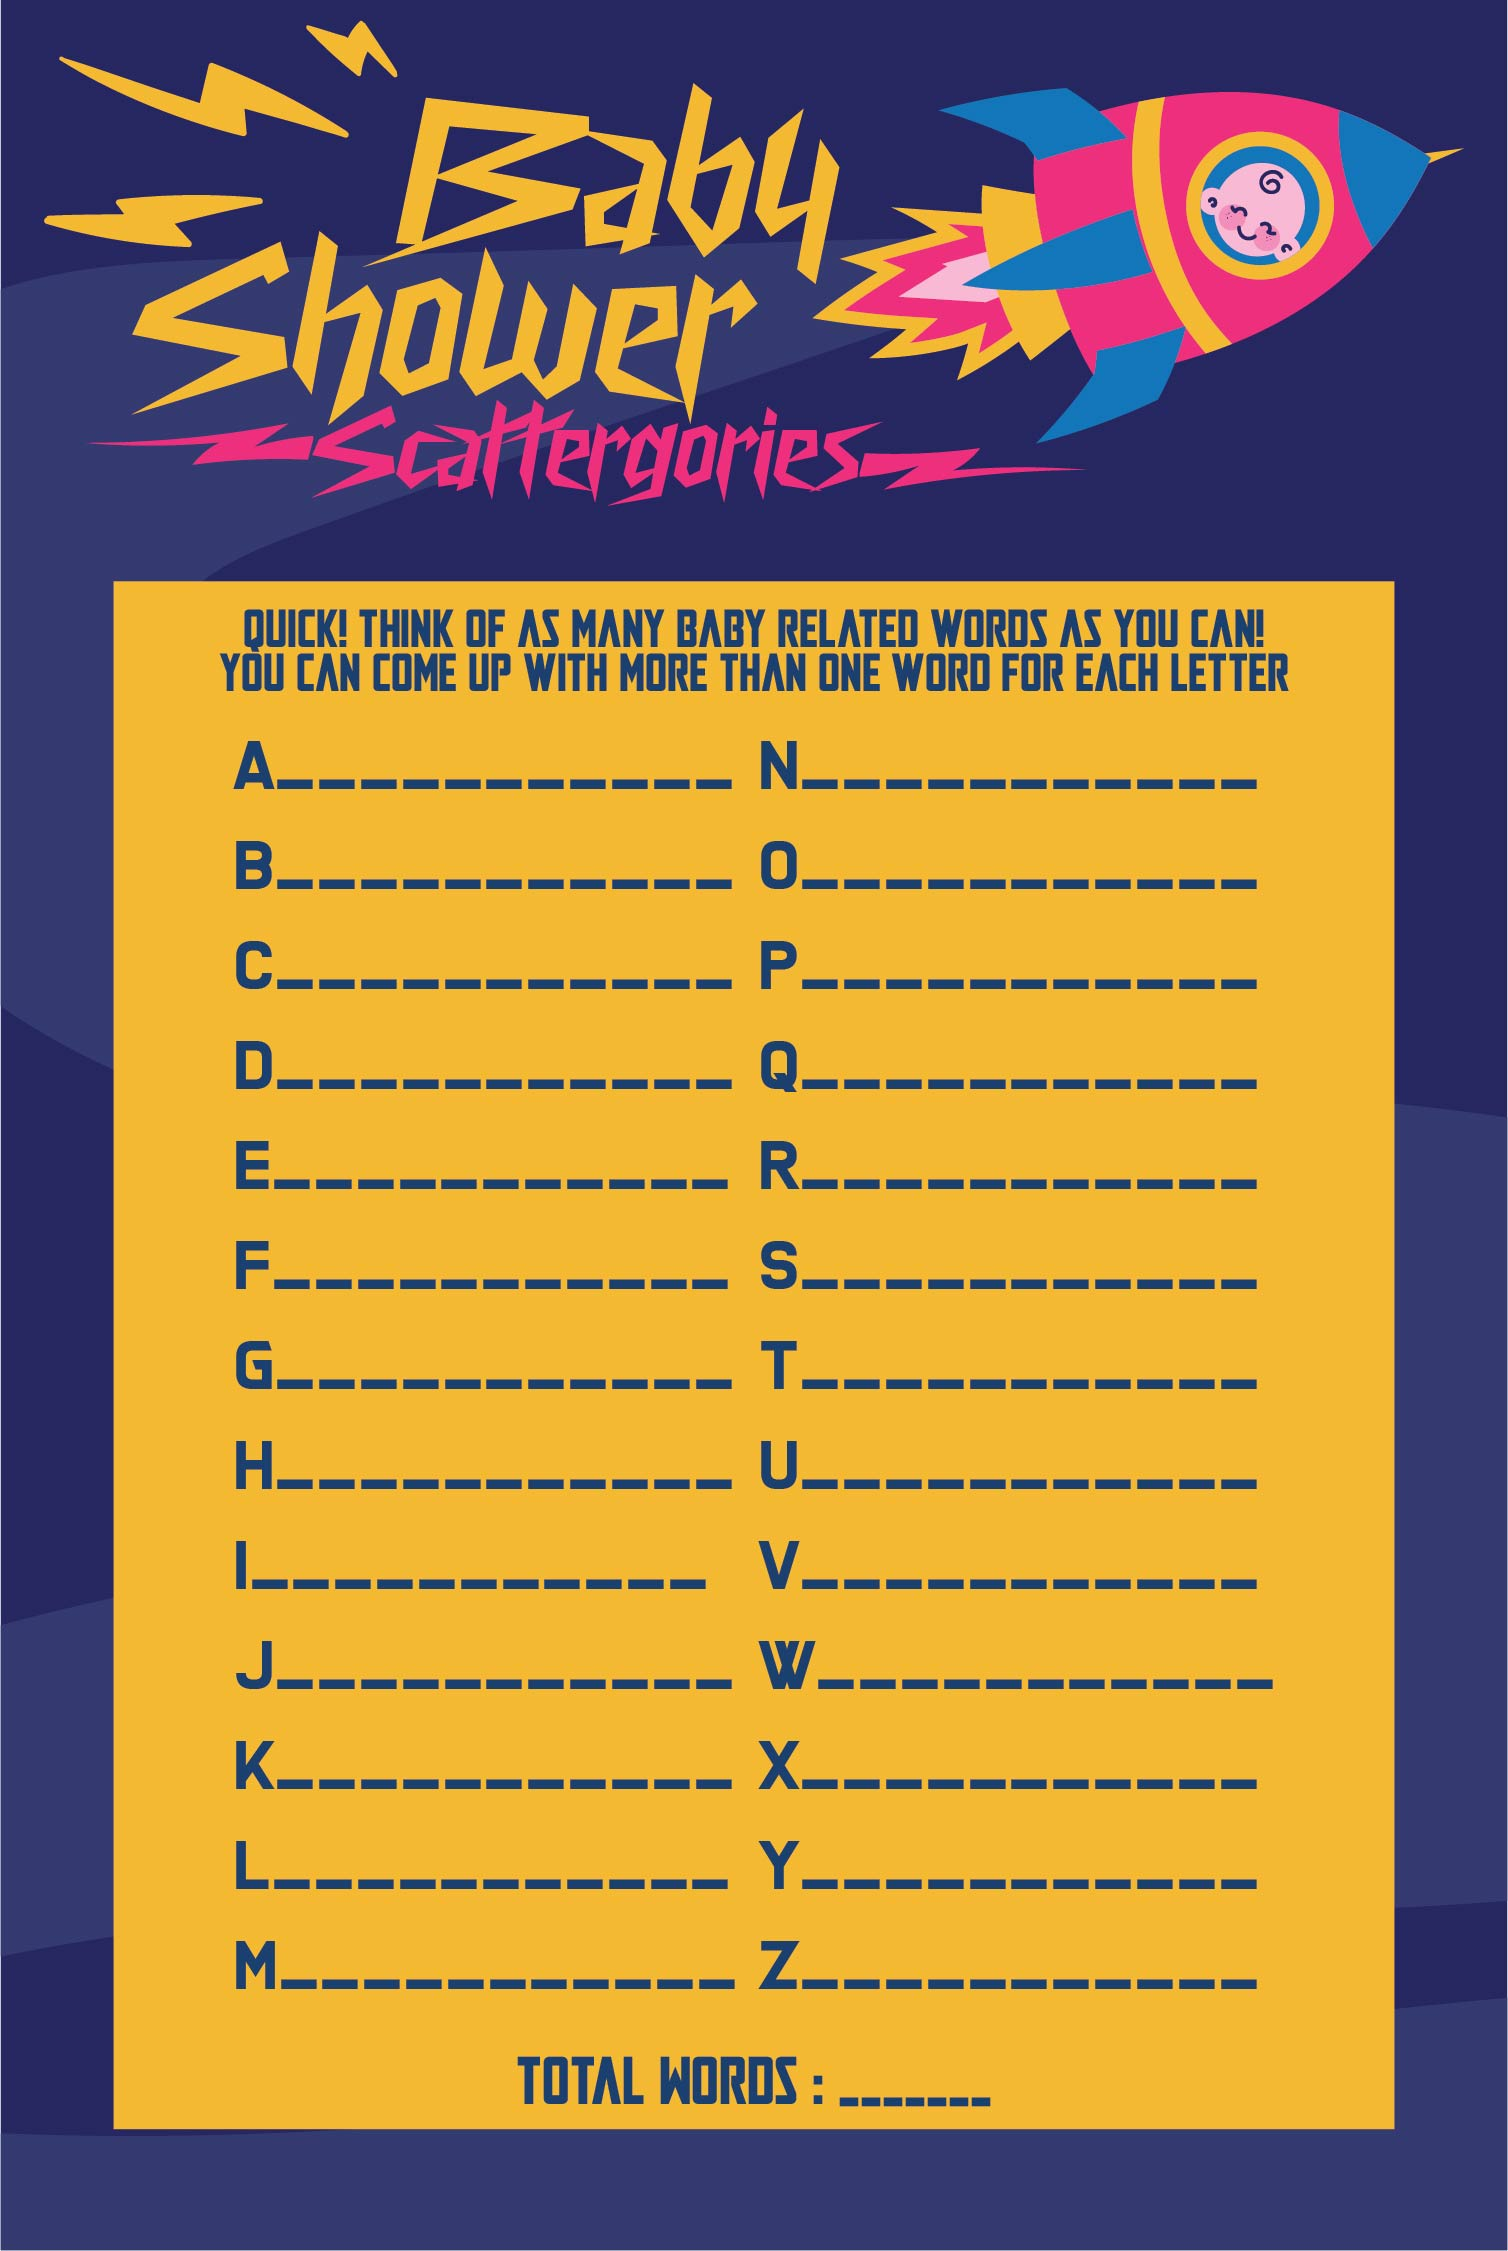 6 Images of Baby Shower Scattergories Printable Free